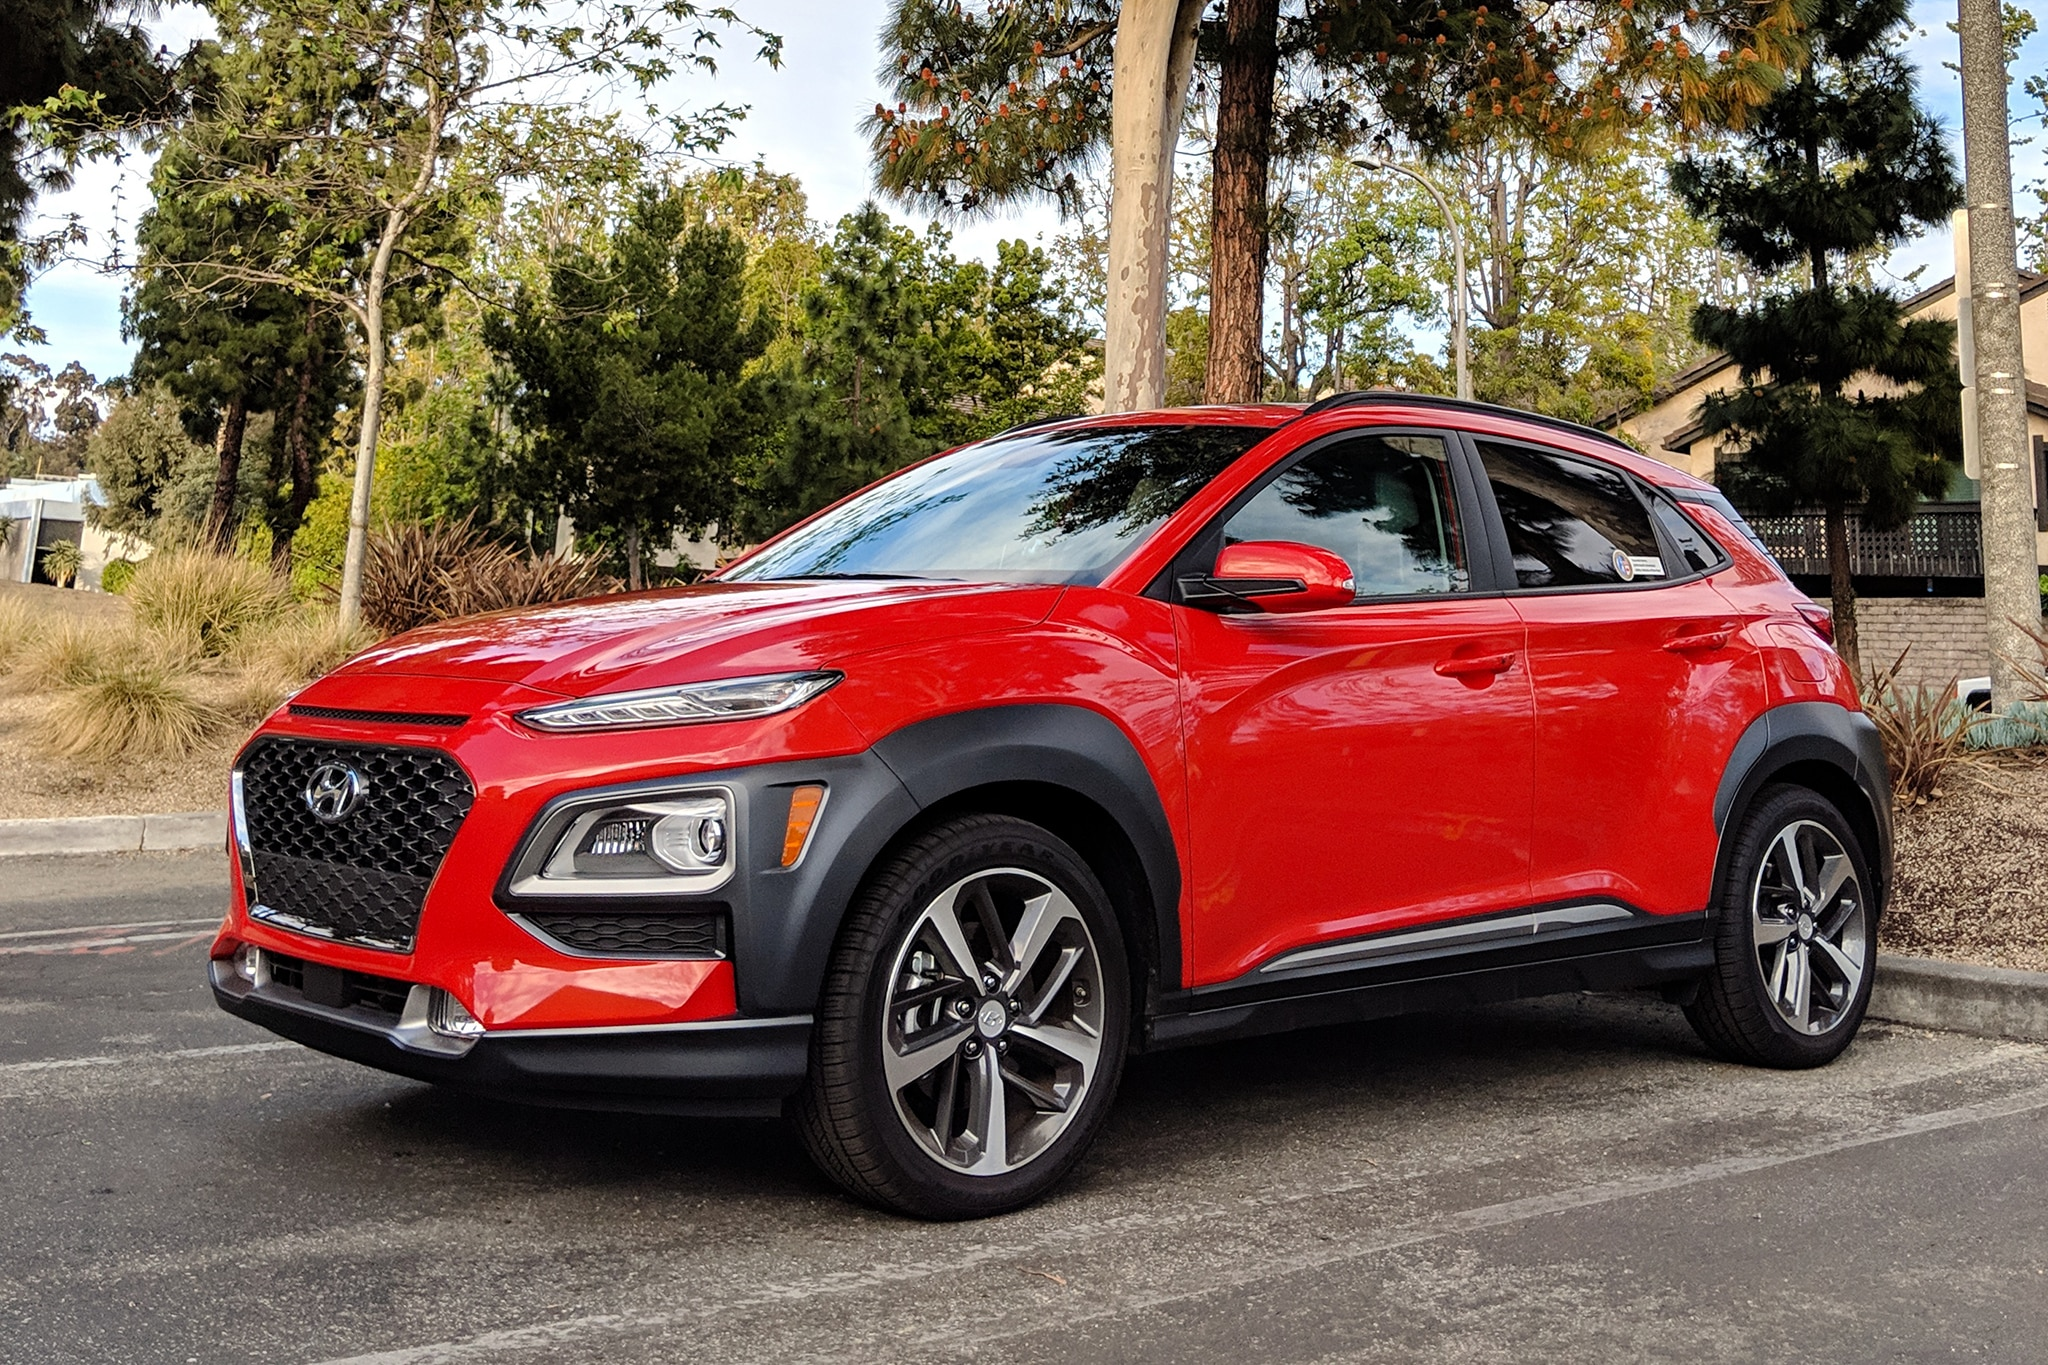 2019 hyundai kona ultimate review a hatchback in disguise automobile magazine. Black Bedroom Furniture Sets. Home Design Ideas